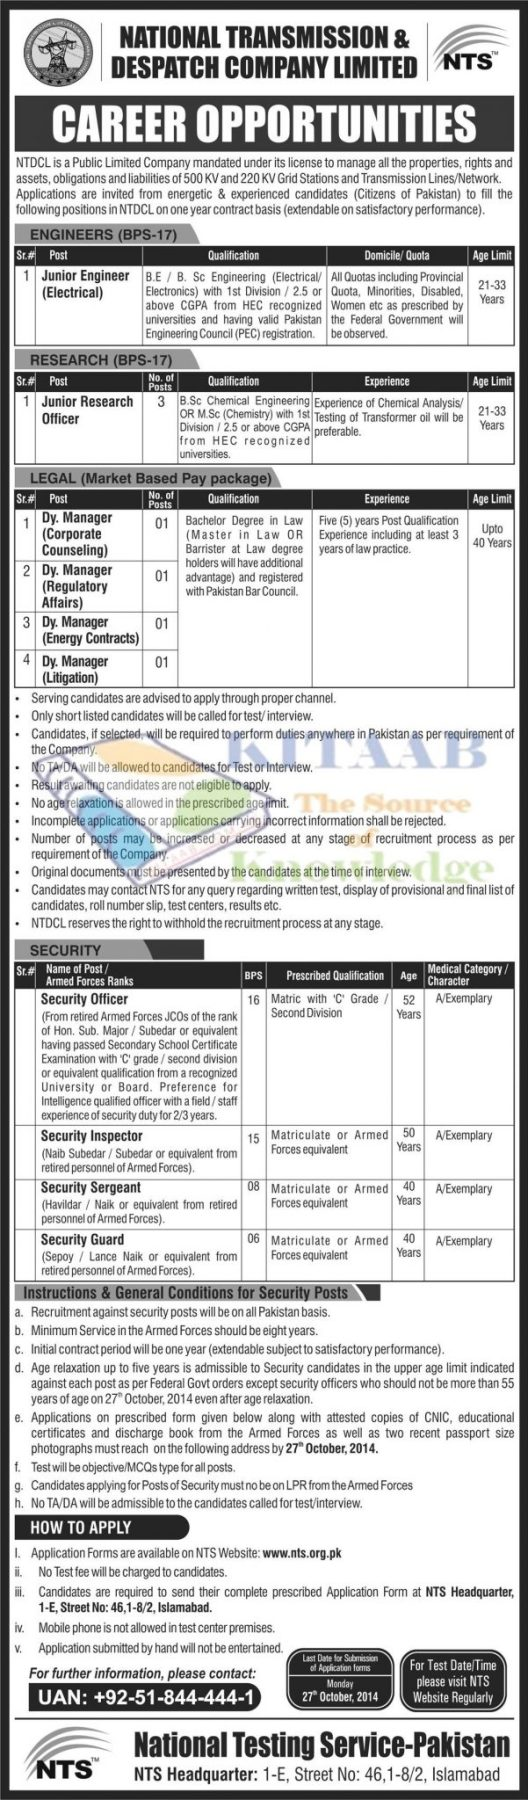 National Transmission and Despatch Company NTDCL Jobs 2016 NTS Test Eligibility Criteria Application Forms Online Engineer, Research, Security